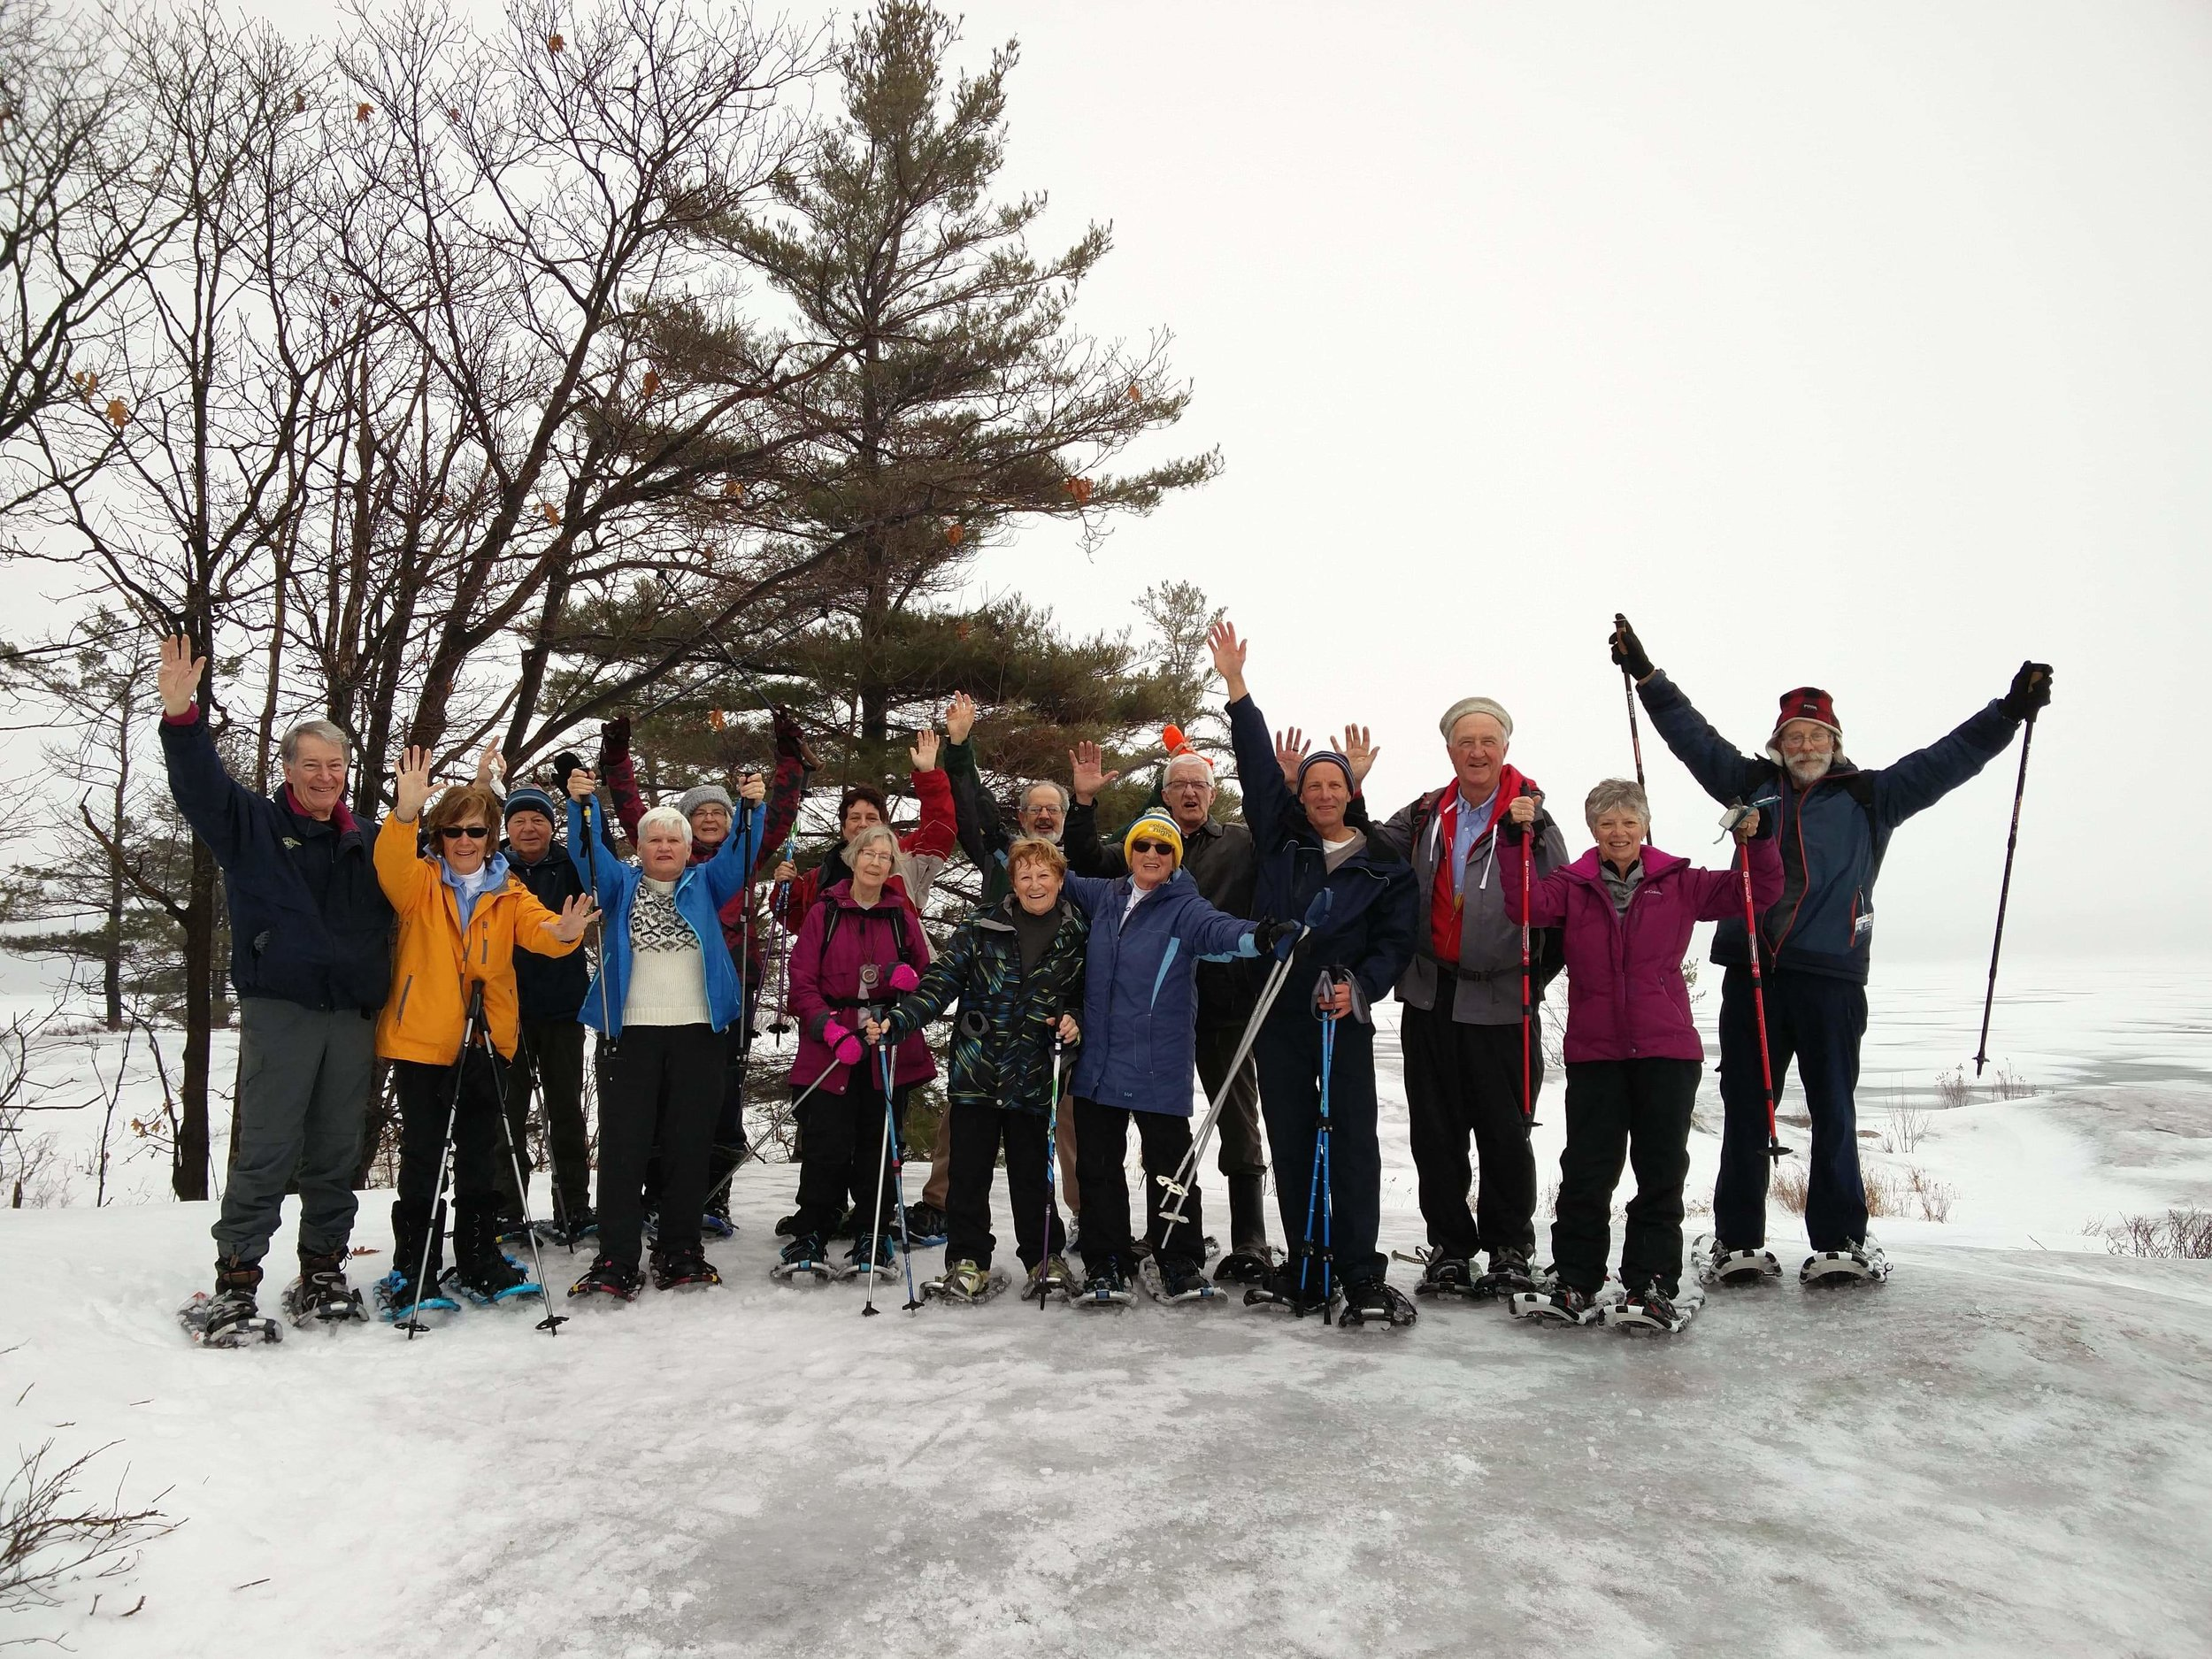 The Dufferin-Hi-Land Bruce Trail Club and the Midland Ganaraska Hiking Club have been enjoying Killbear's rugged and beautiful hiking trails for almost a decade.